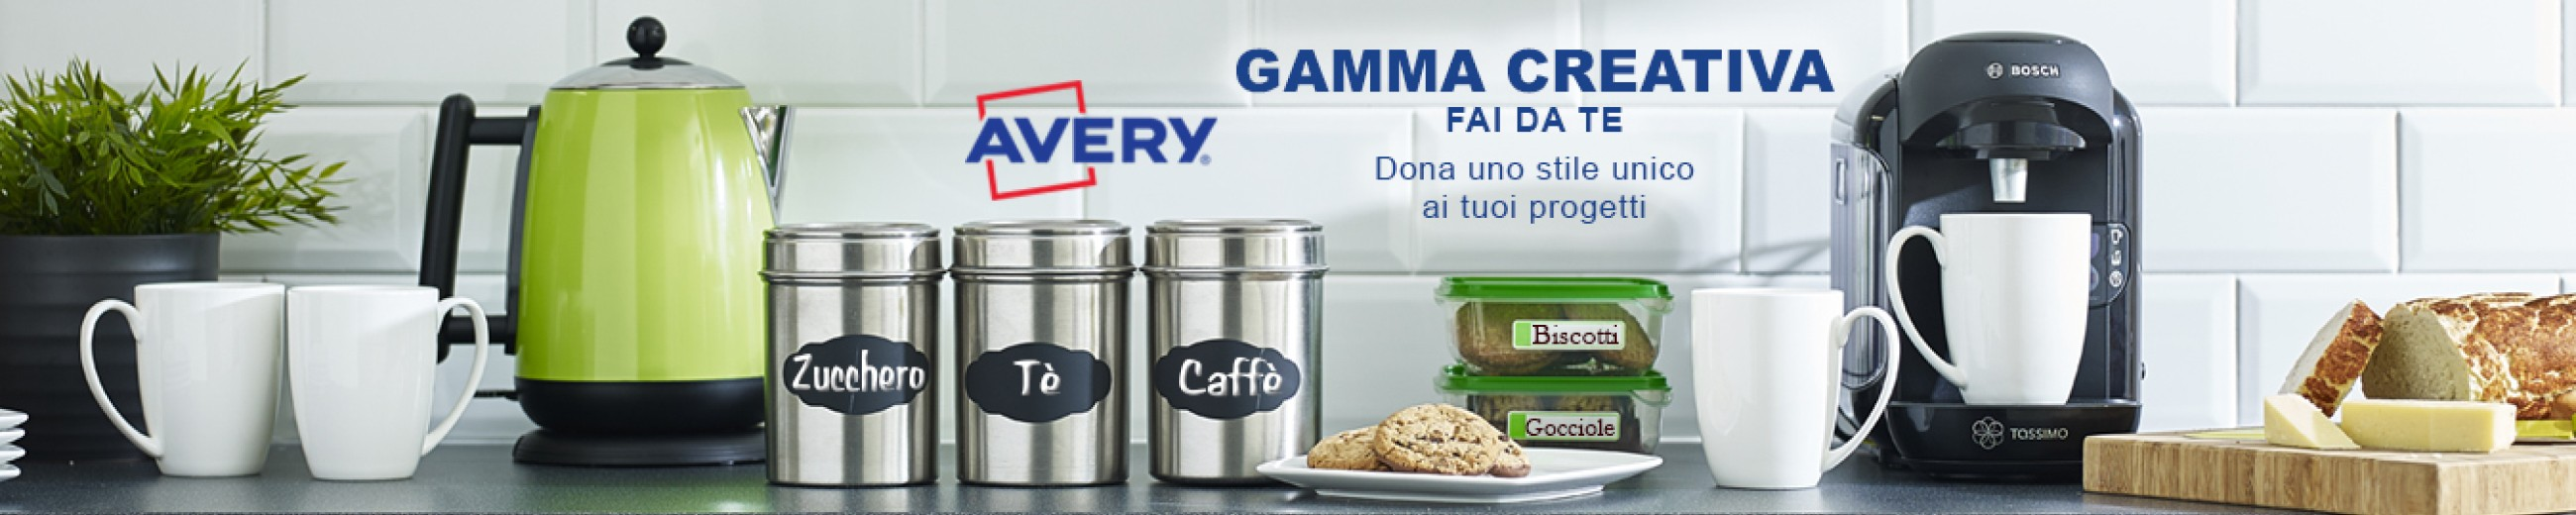 gamma creativa Avery